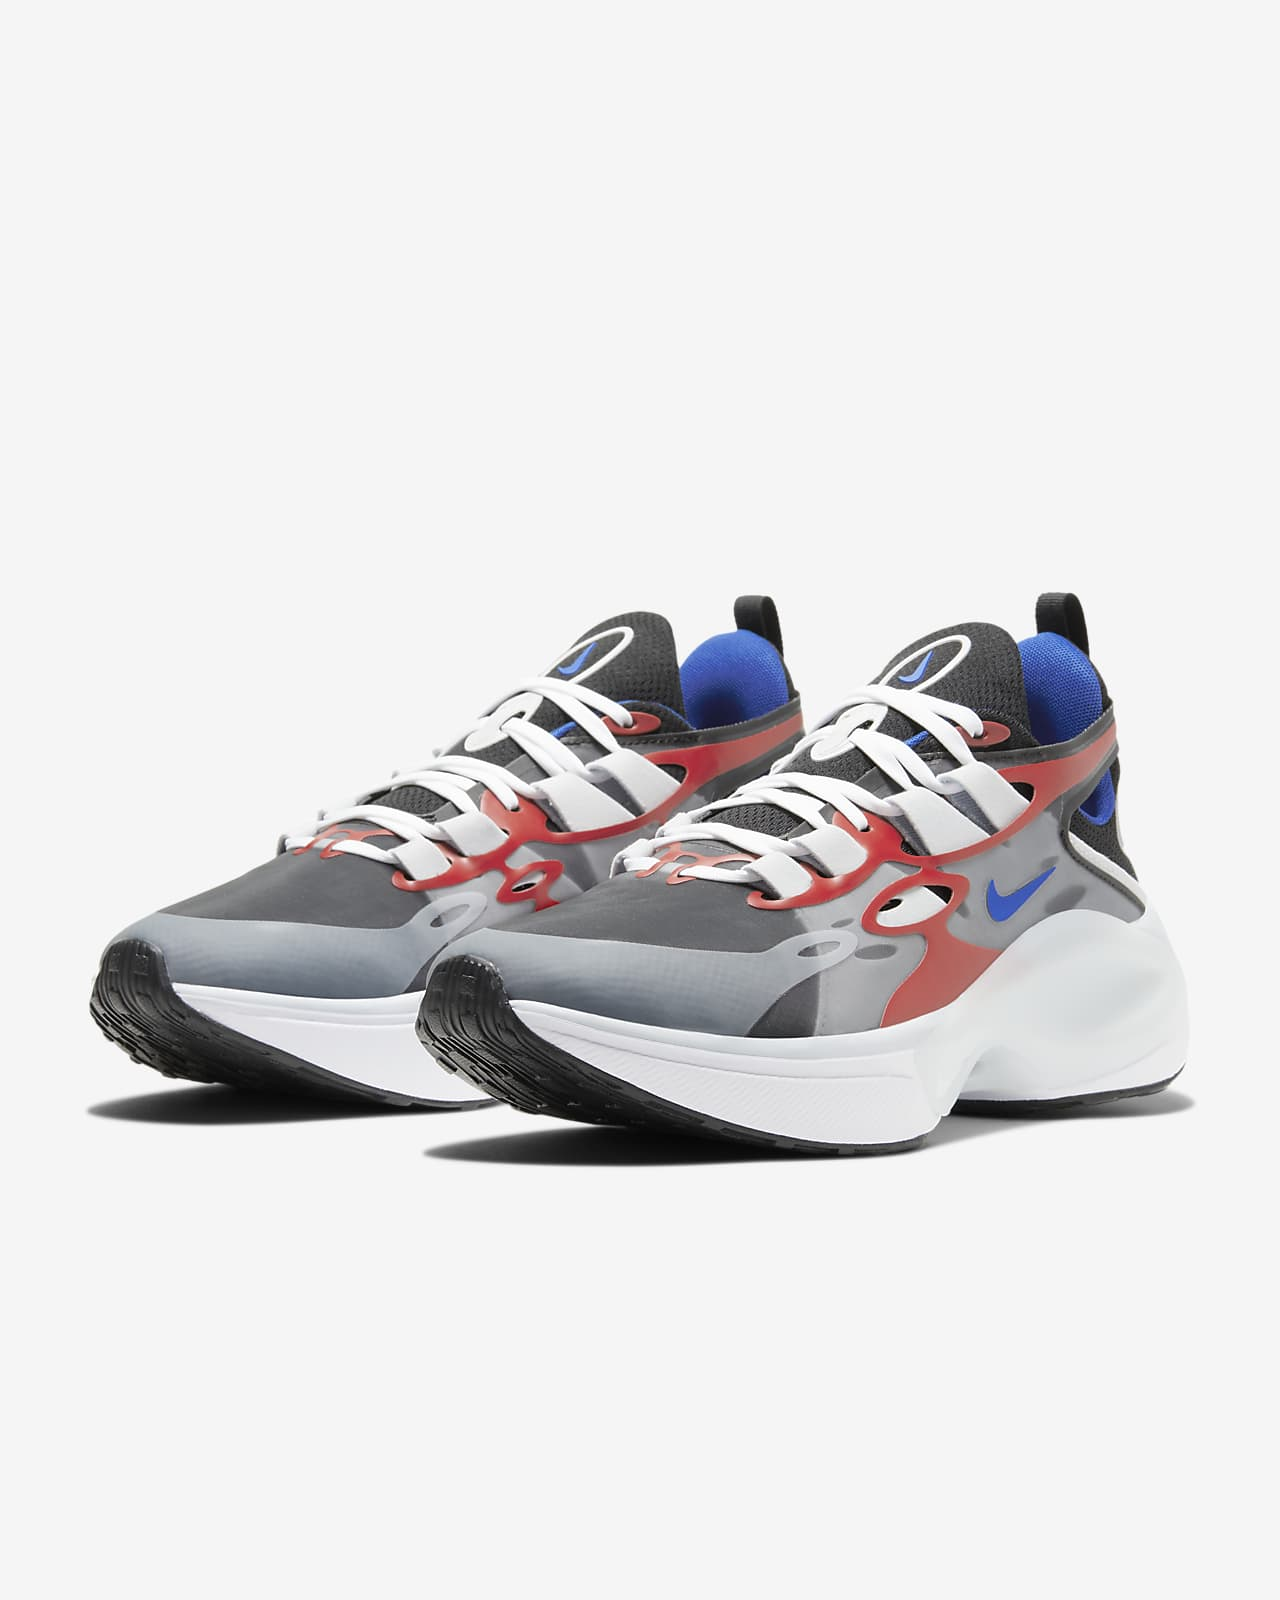 nike d shoes price